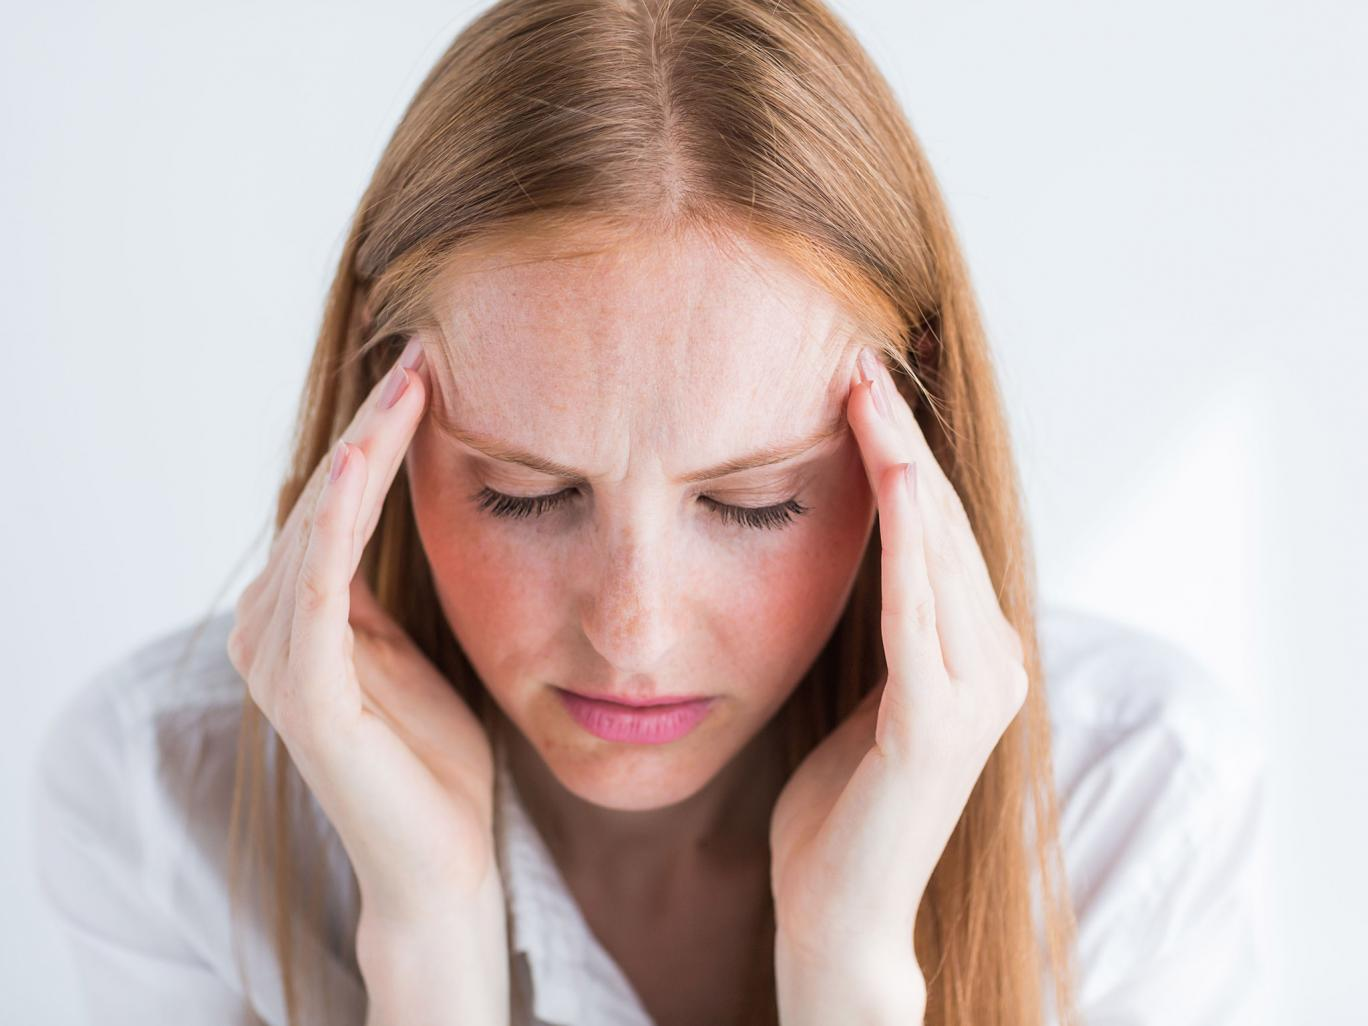 migraine headaches Onzetra xsail is used for people who have been told by a healthcare provider that they have migraine headaches onzetra xsail is not for the prevention of migraines or for other types of headaches, including cluster headache.